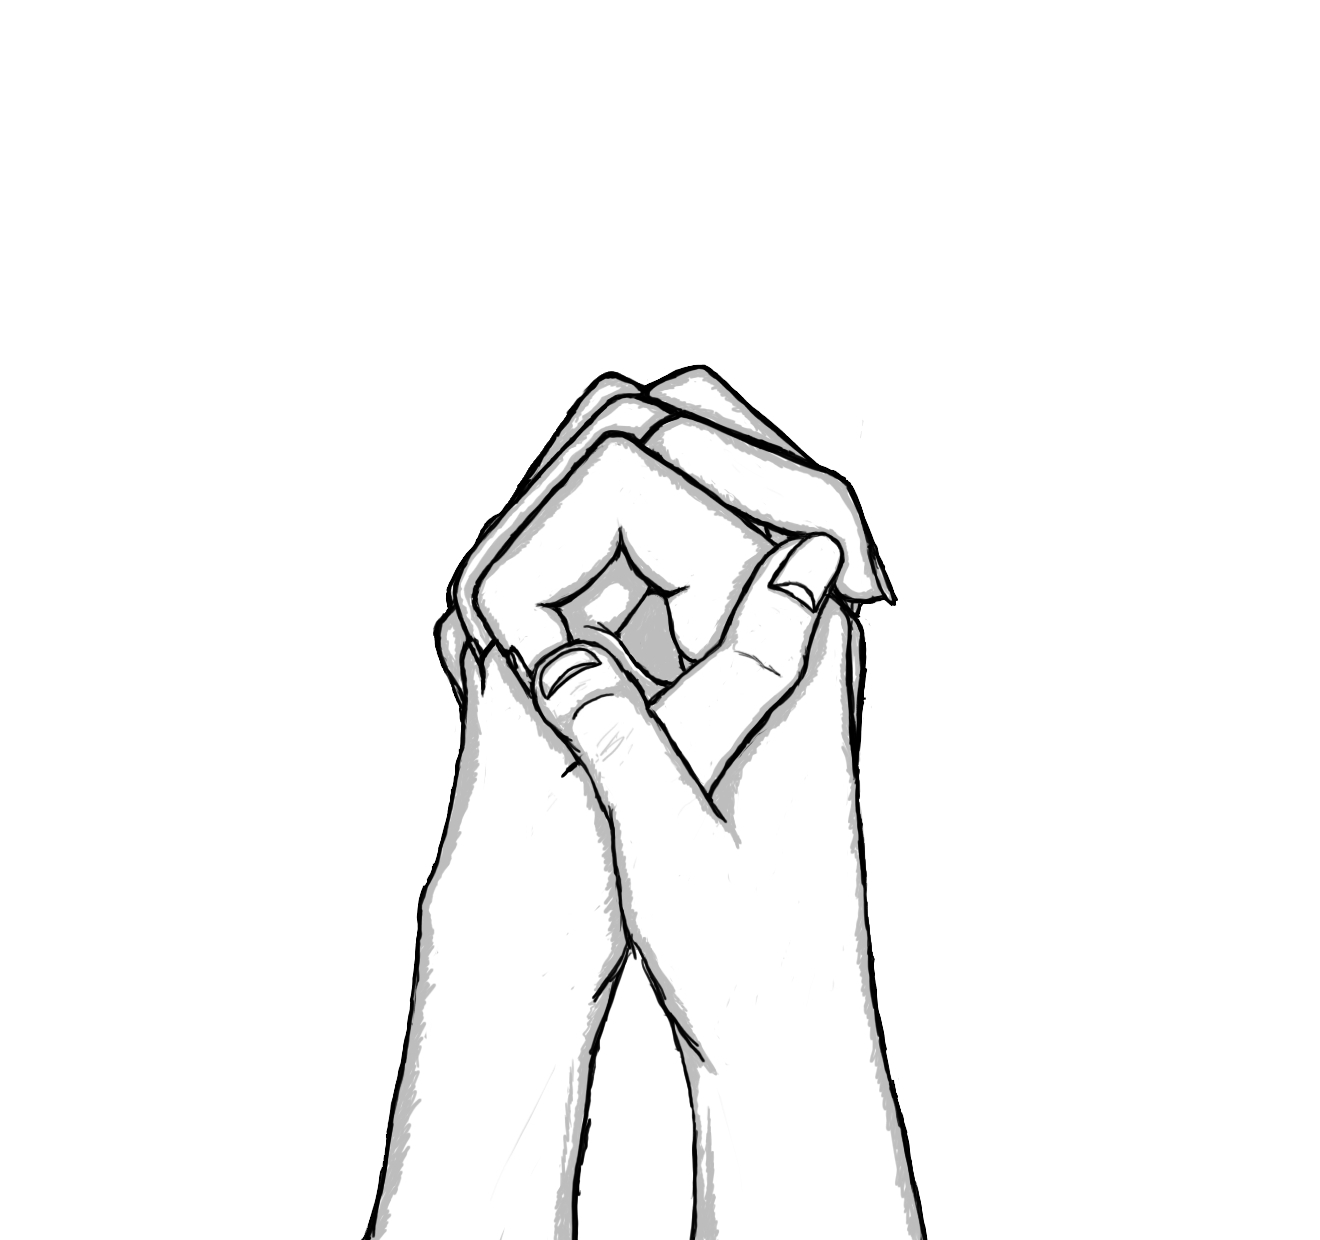 1320x1240 Drawing Of People Holding Hands Drawings Of People In Love